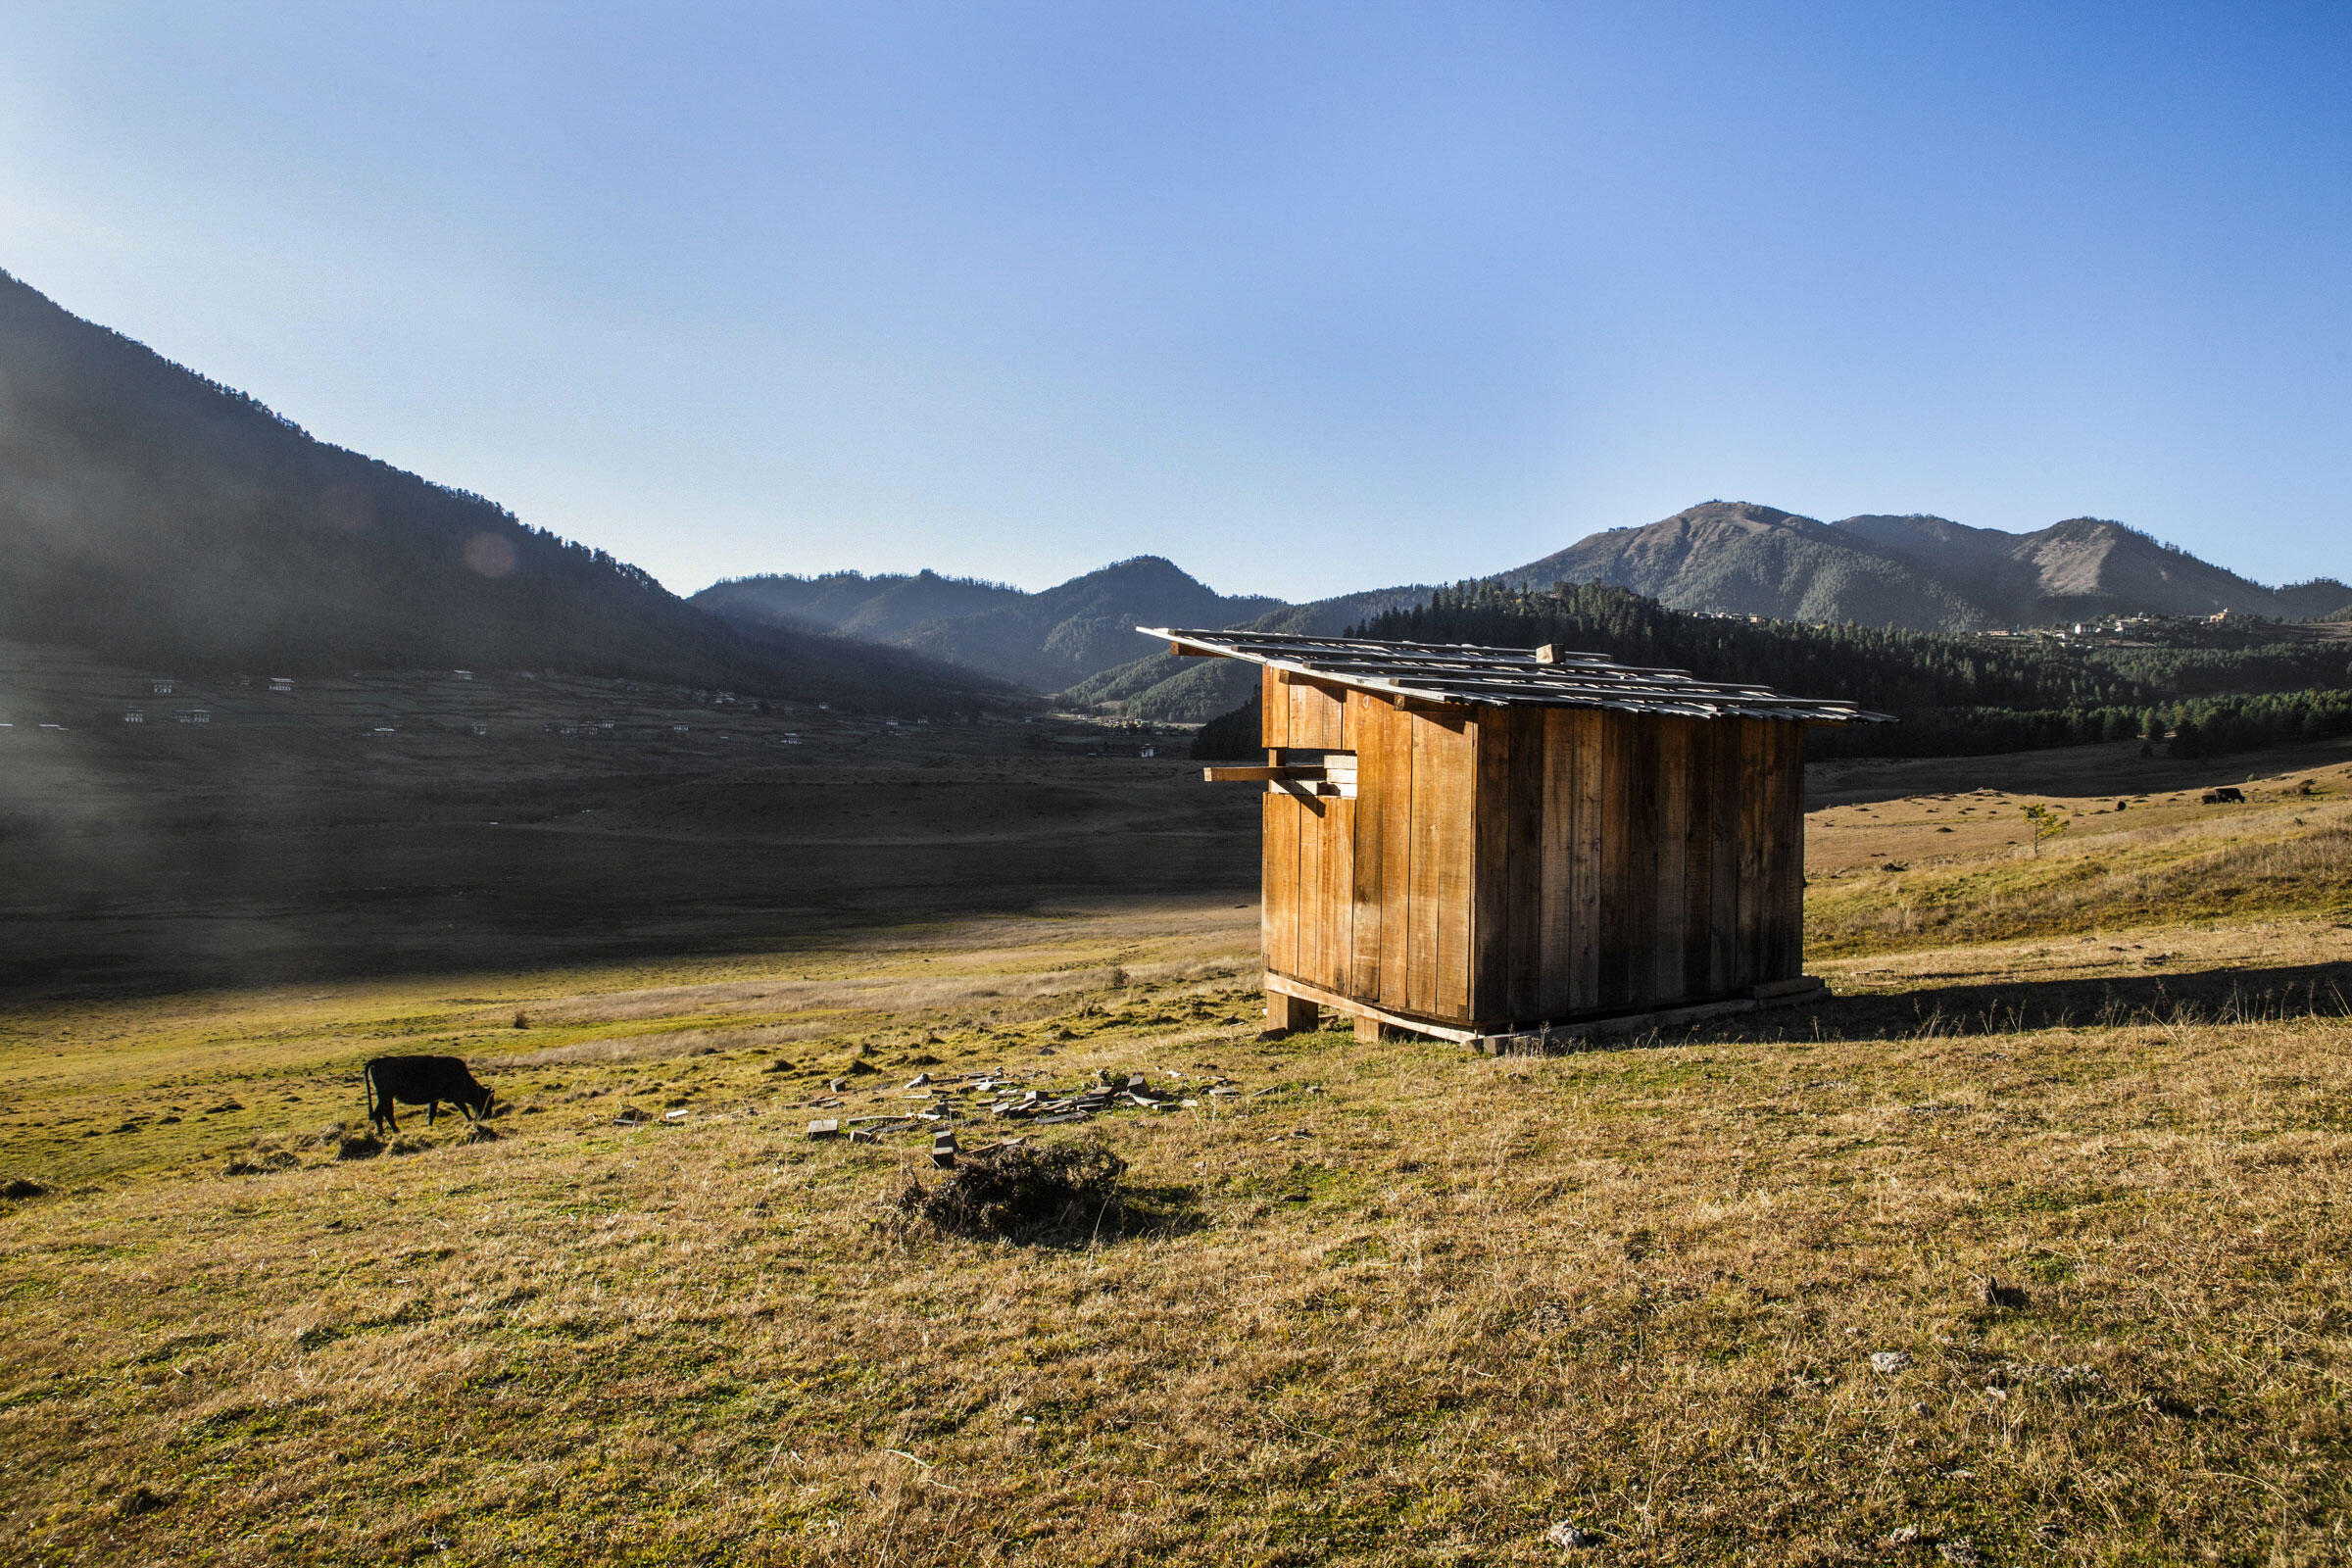 An observation box located opposite the RSPN information center. The box allows staff to closely observe the cranes without disturbing the birds. Ambika Singh